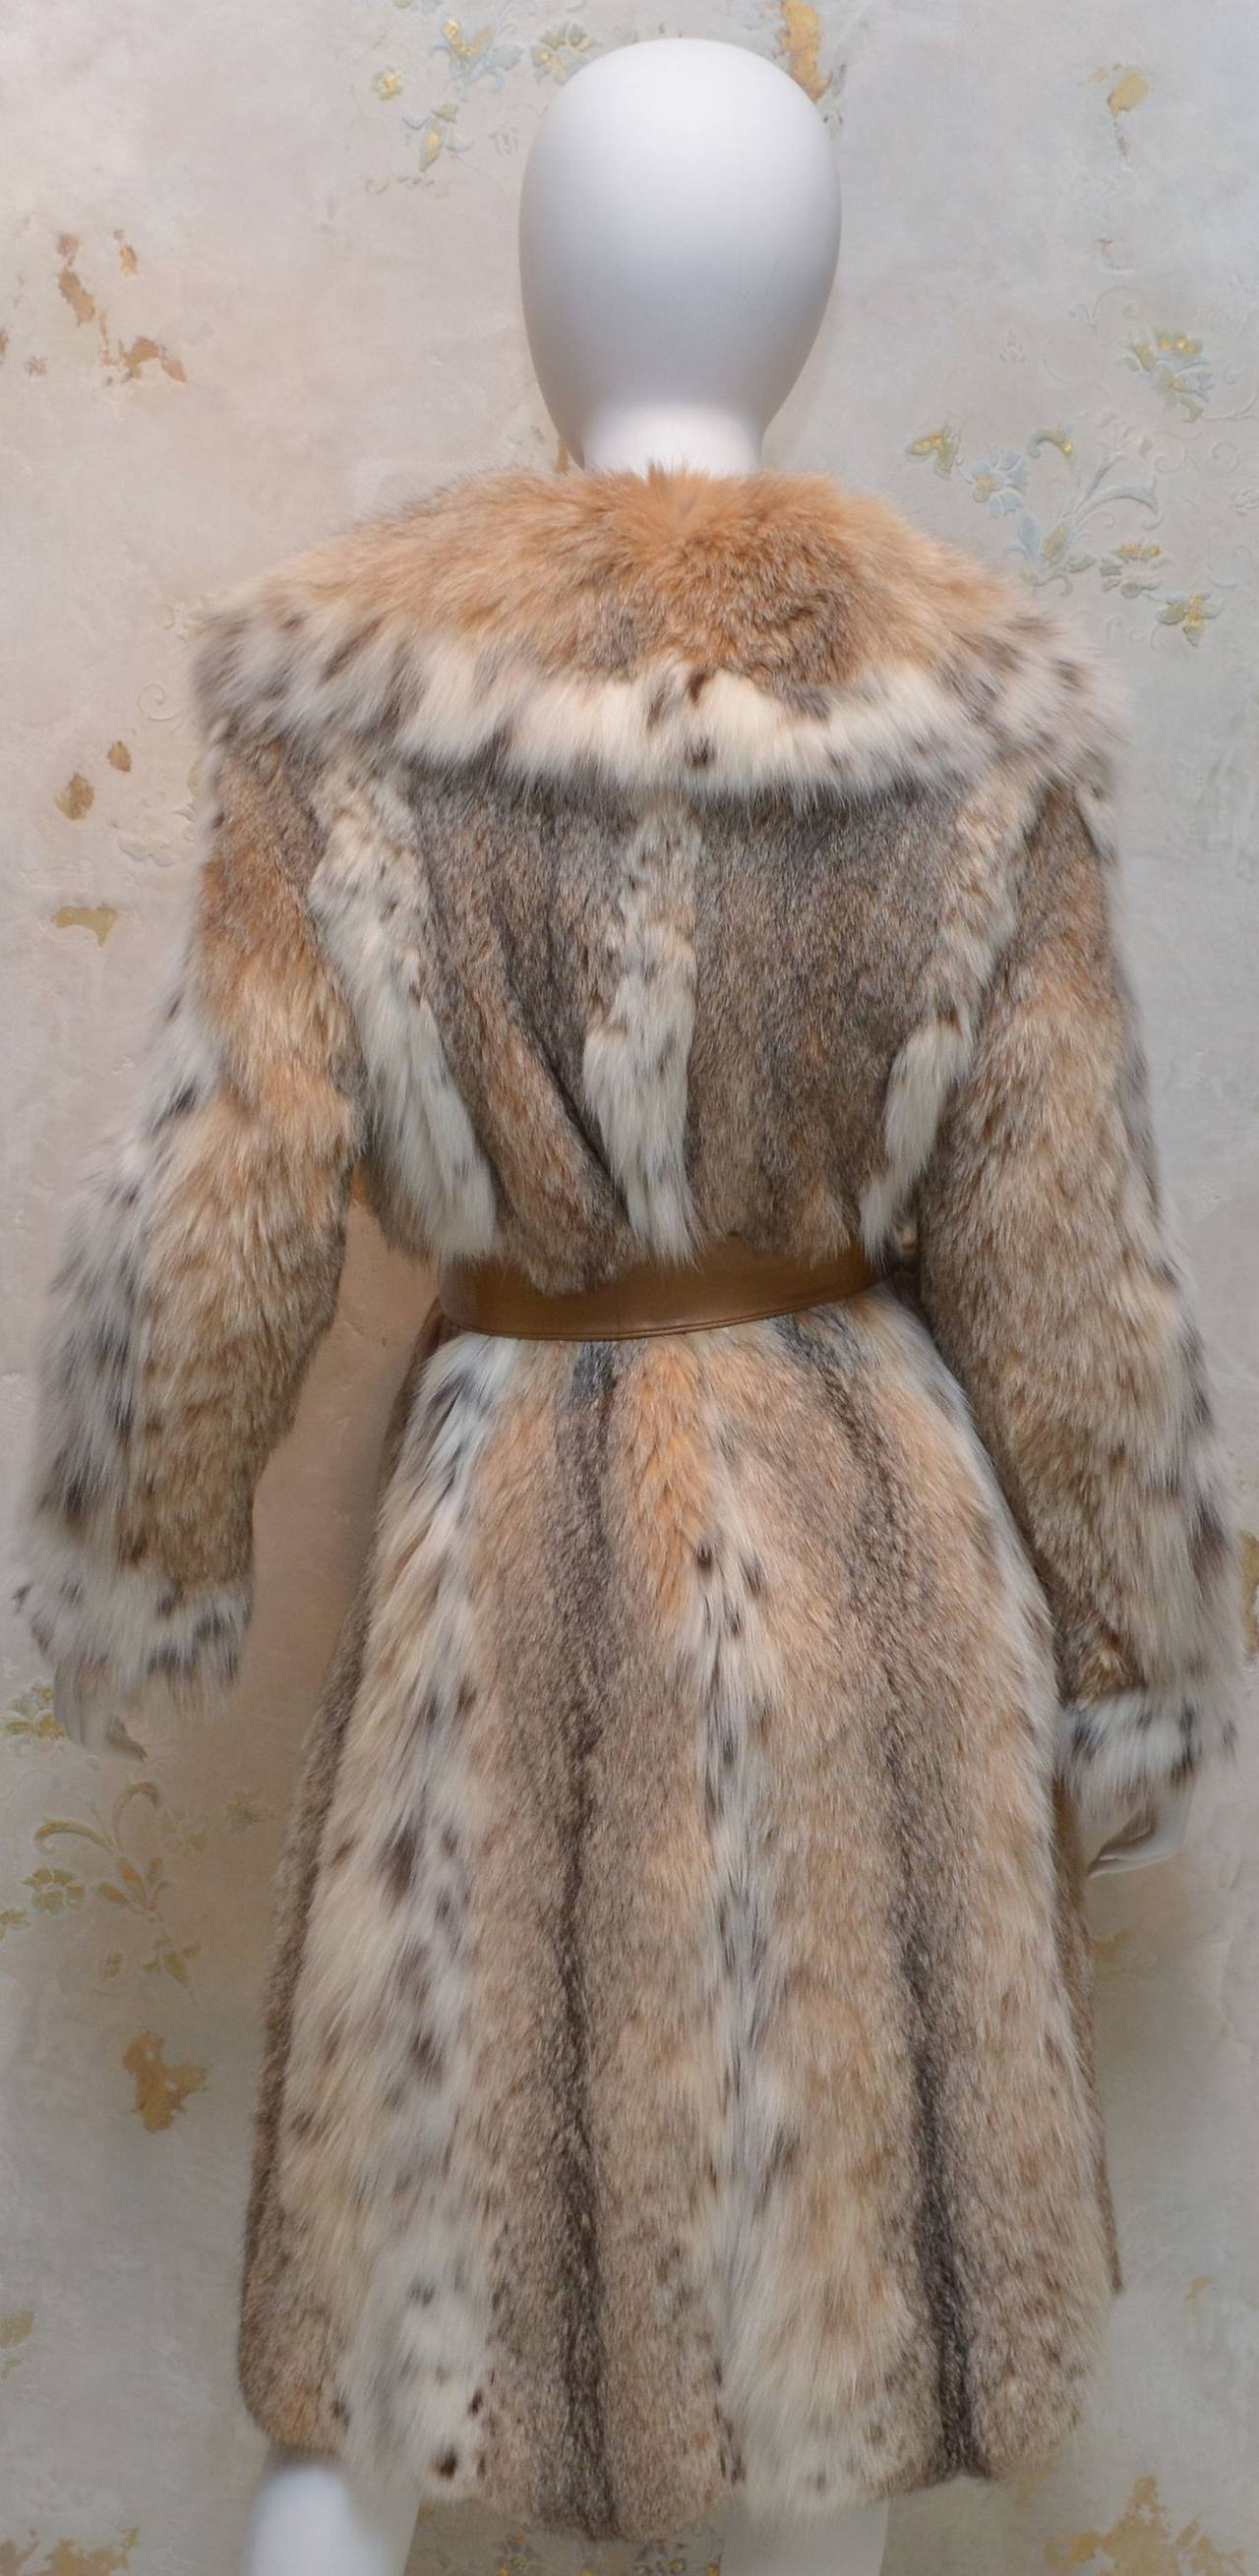 1960's Lynx coat features a spotted detail throughout, leather waist tie, fully lined coat, and pockets at the hips. Coat is in excellent condition!  Measurements: Bust - 34'' Waist - 30'' Sleeves - 22'' Length - 43''